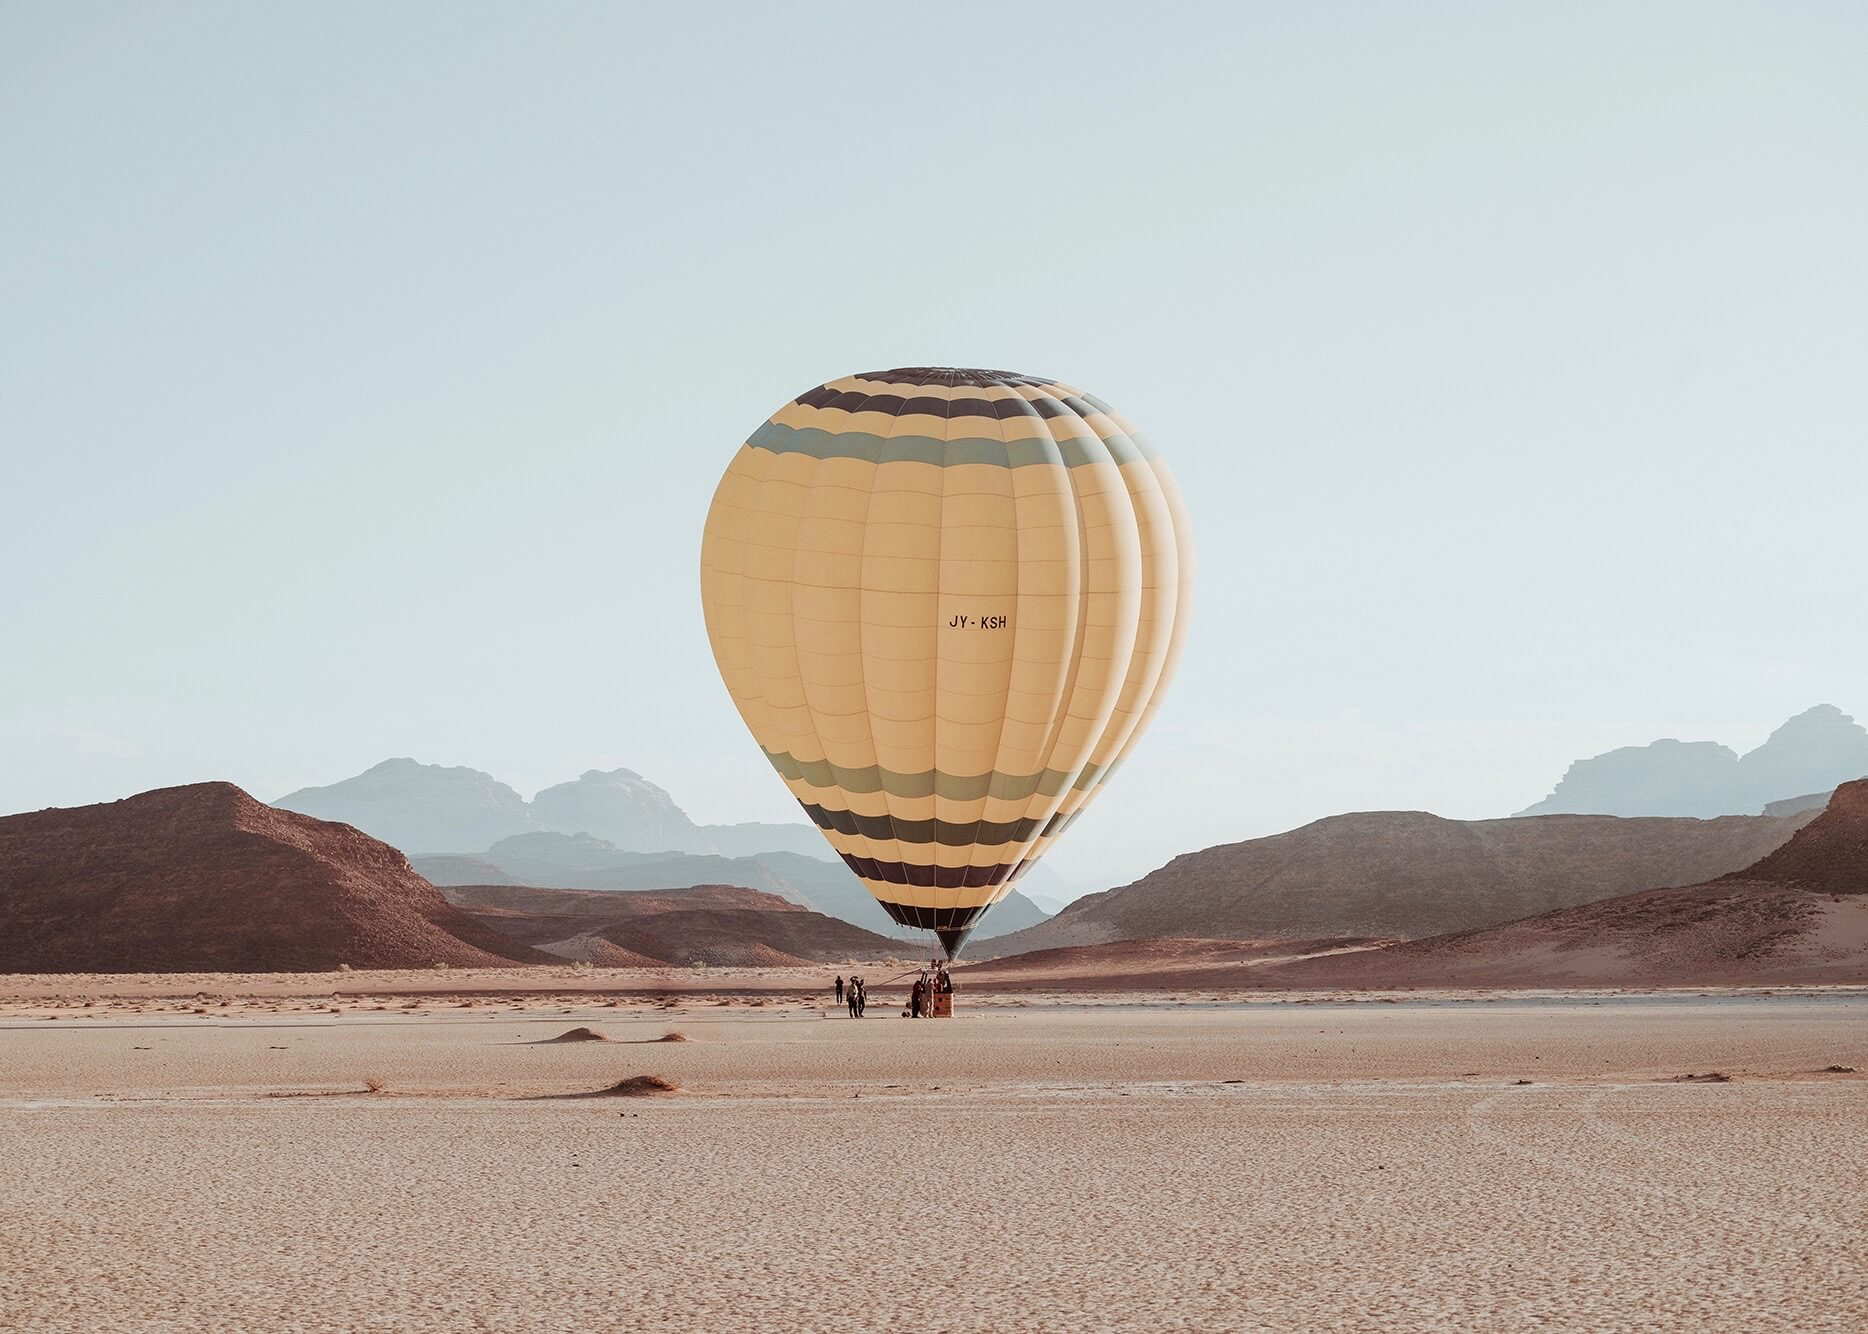 Emilie Ristevski photo of hot air balloon in the desert